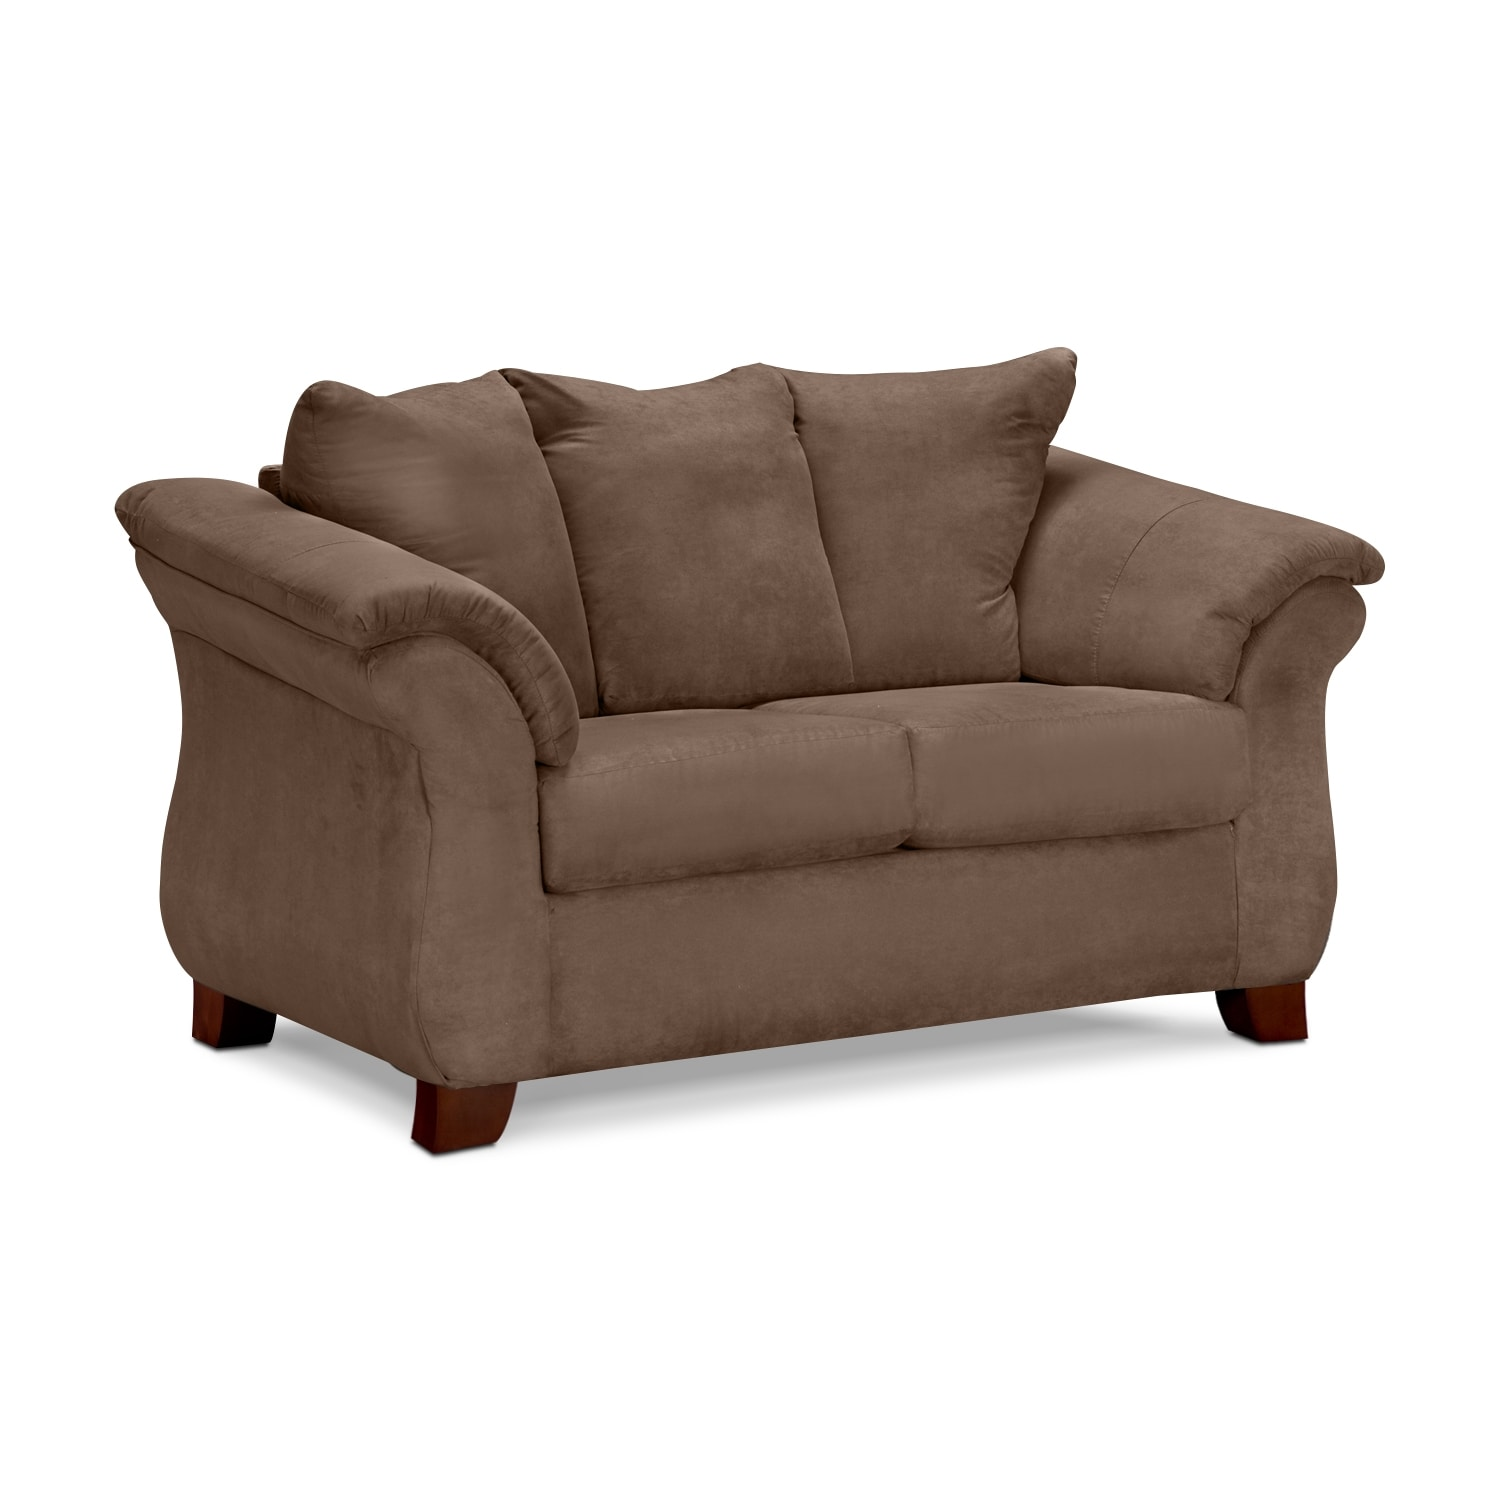 Adrian Loveseat - Taupe | Value City Furniture